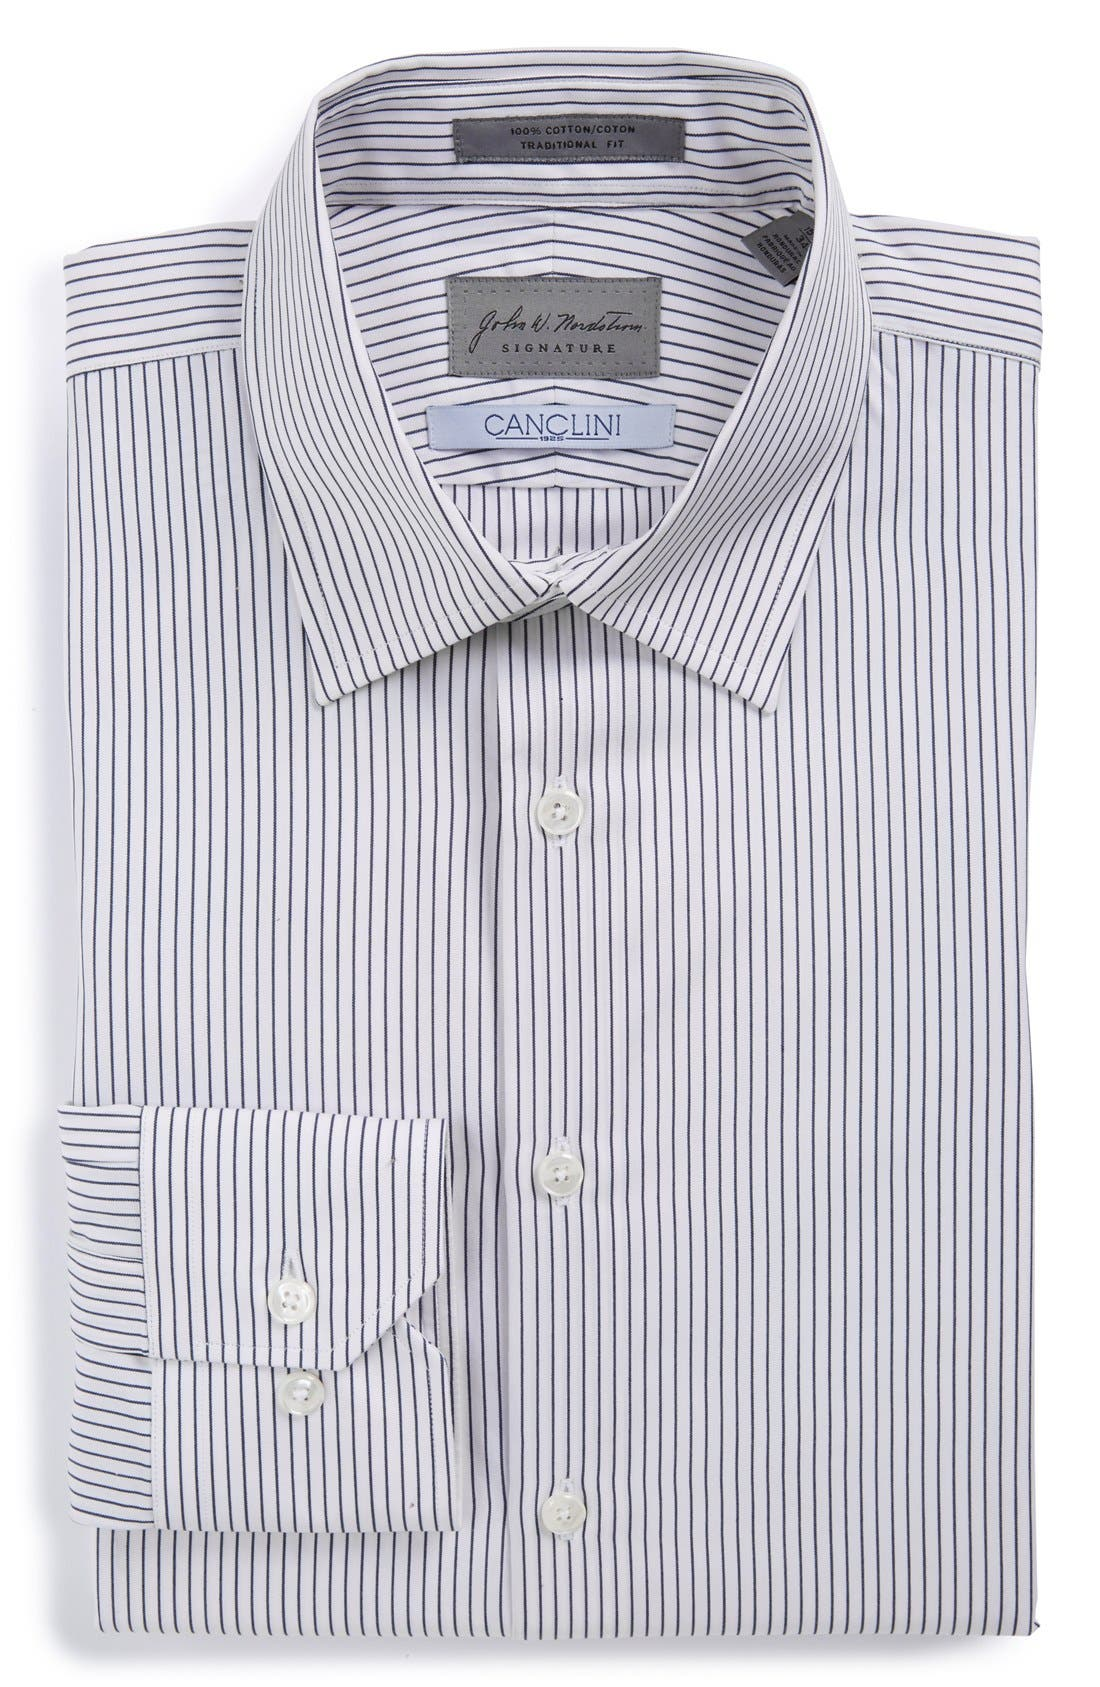 John W. Nordstrom Signature Trim Fit Stripe Dress Shirt,                             Main thumbnail 1, color,                             402